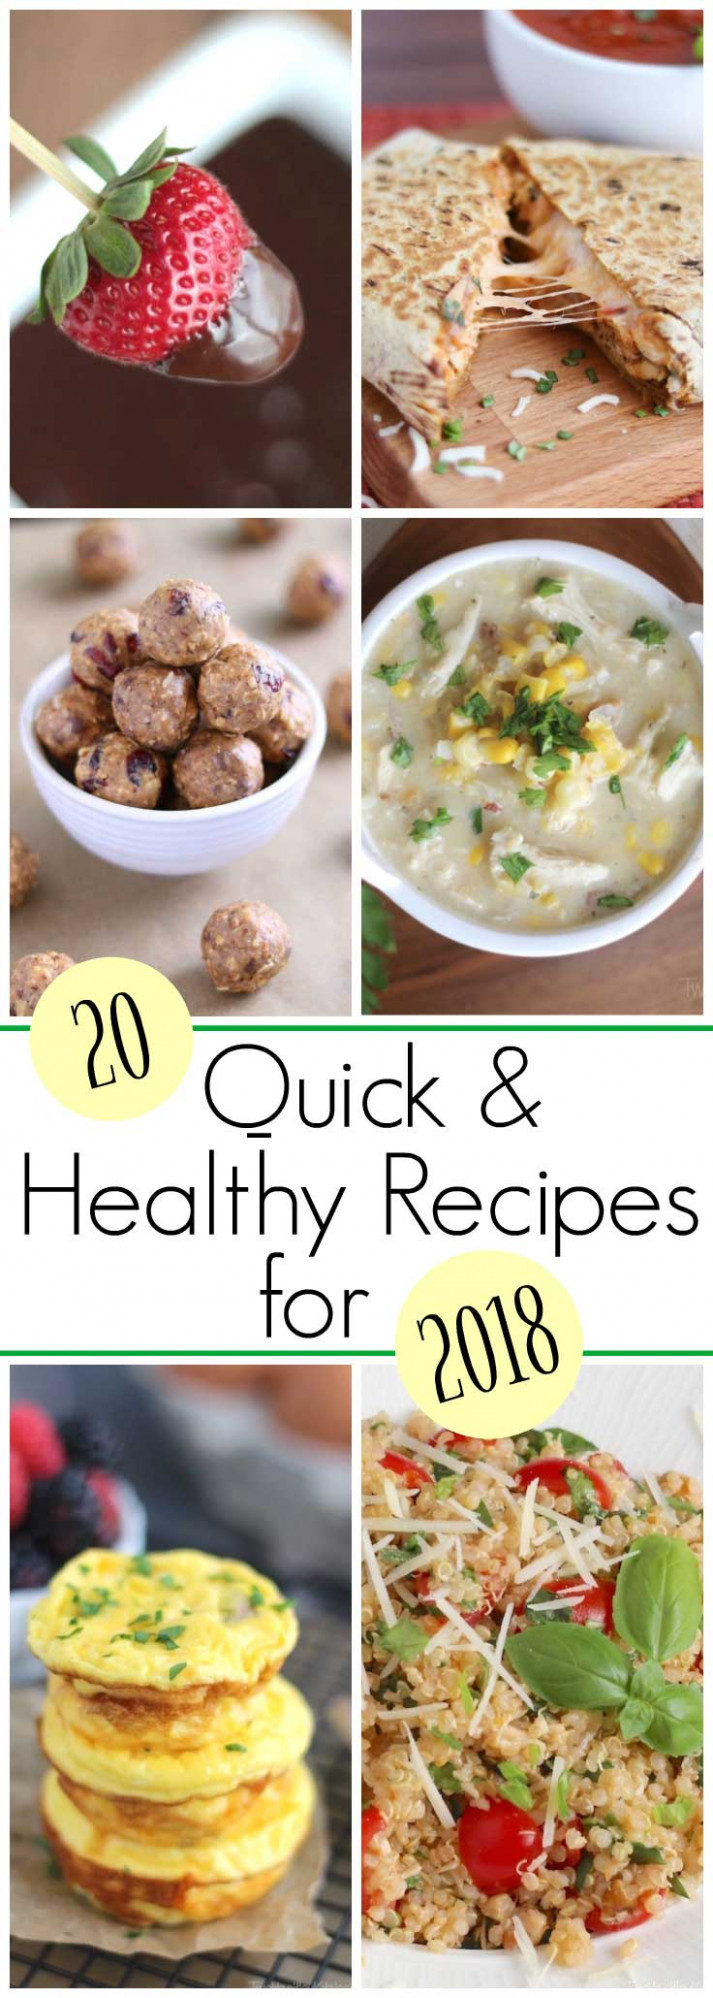 20 Best Quick and Healthy Recipes for 2018 - Two Healthy ..